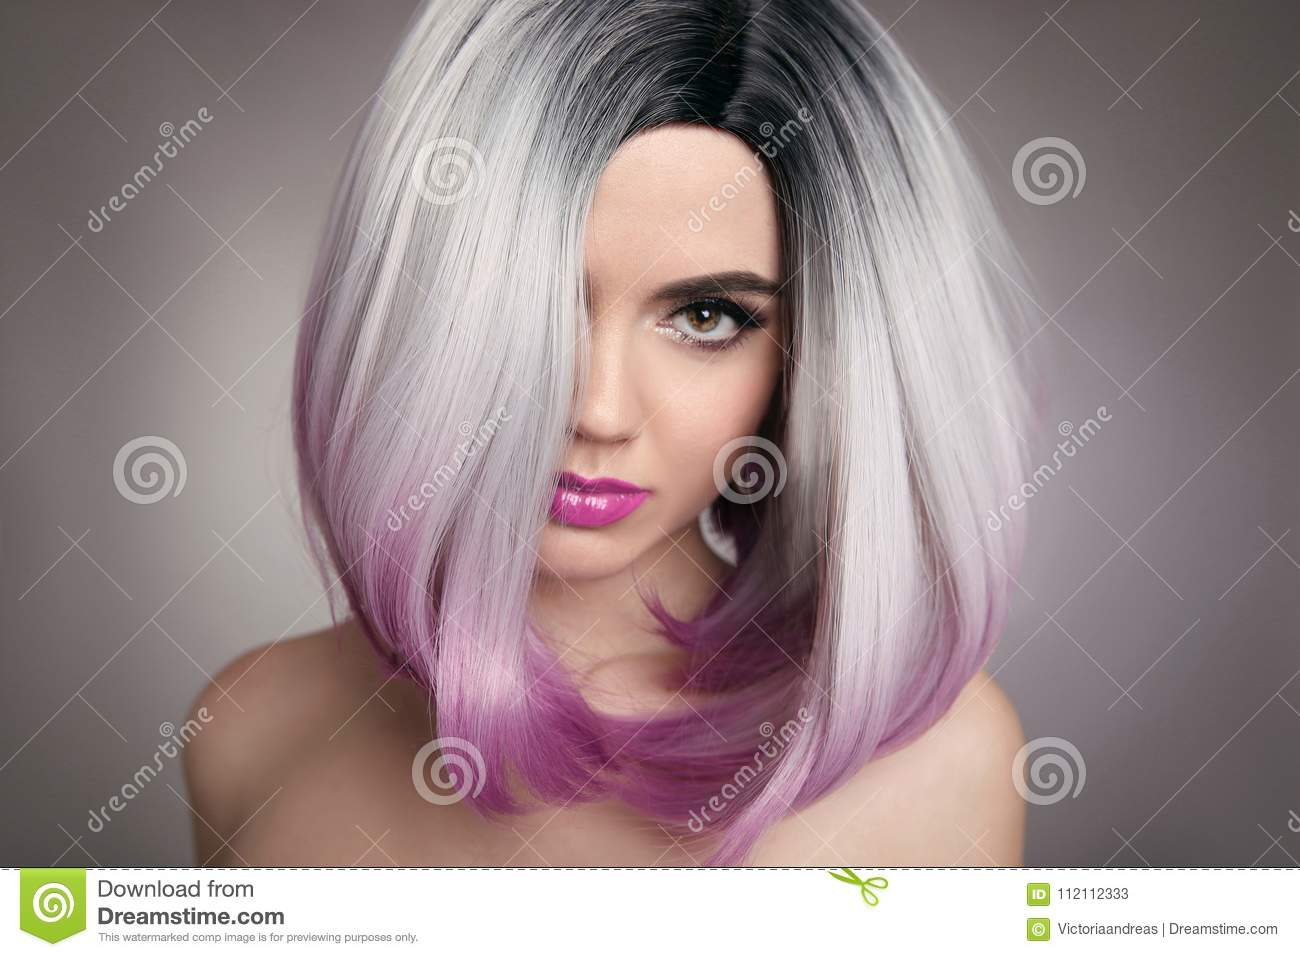 Ombre Bob Hairstyle Blonde Girl Portrait Purple Makeup Beautif